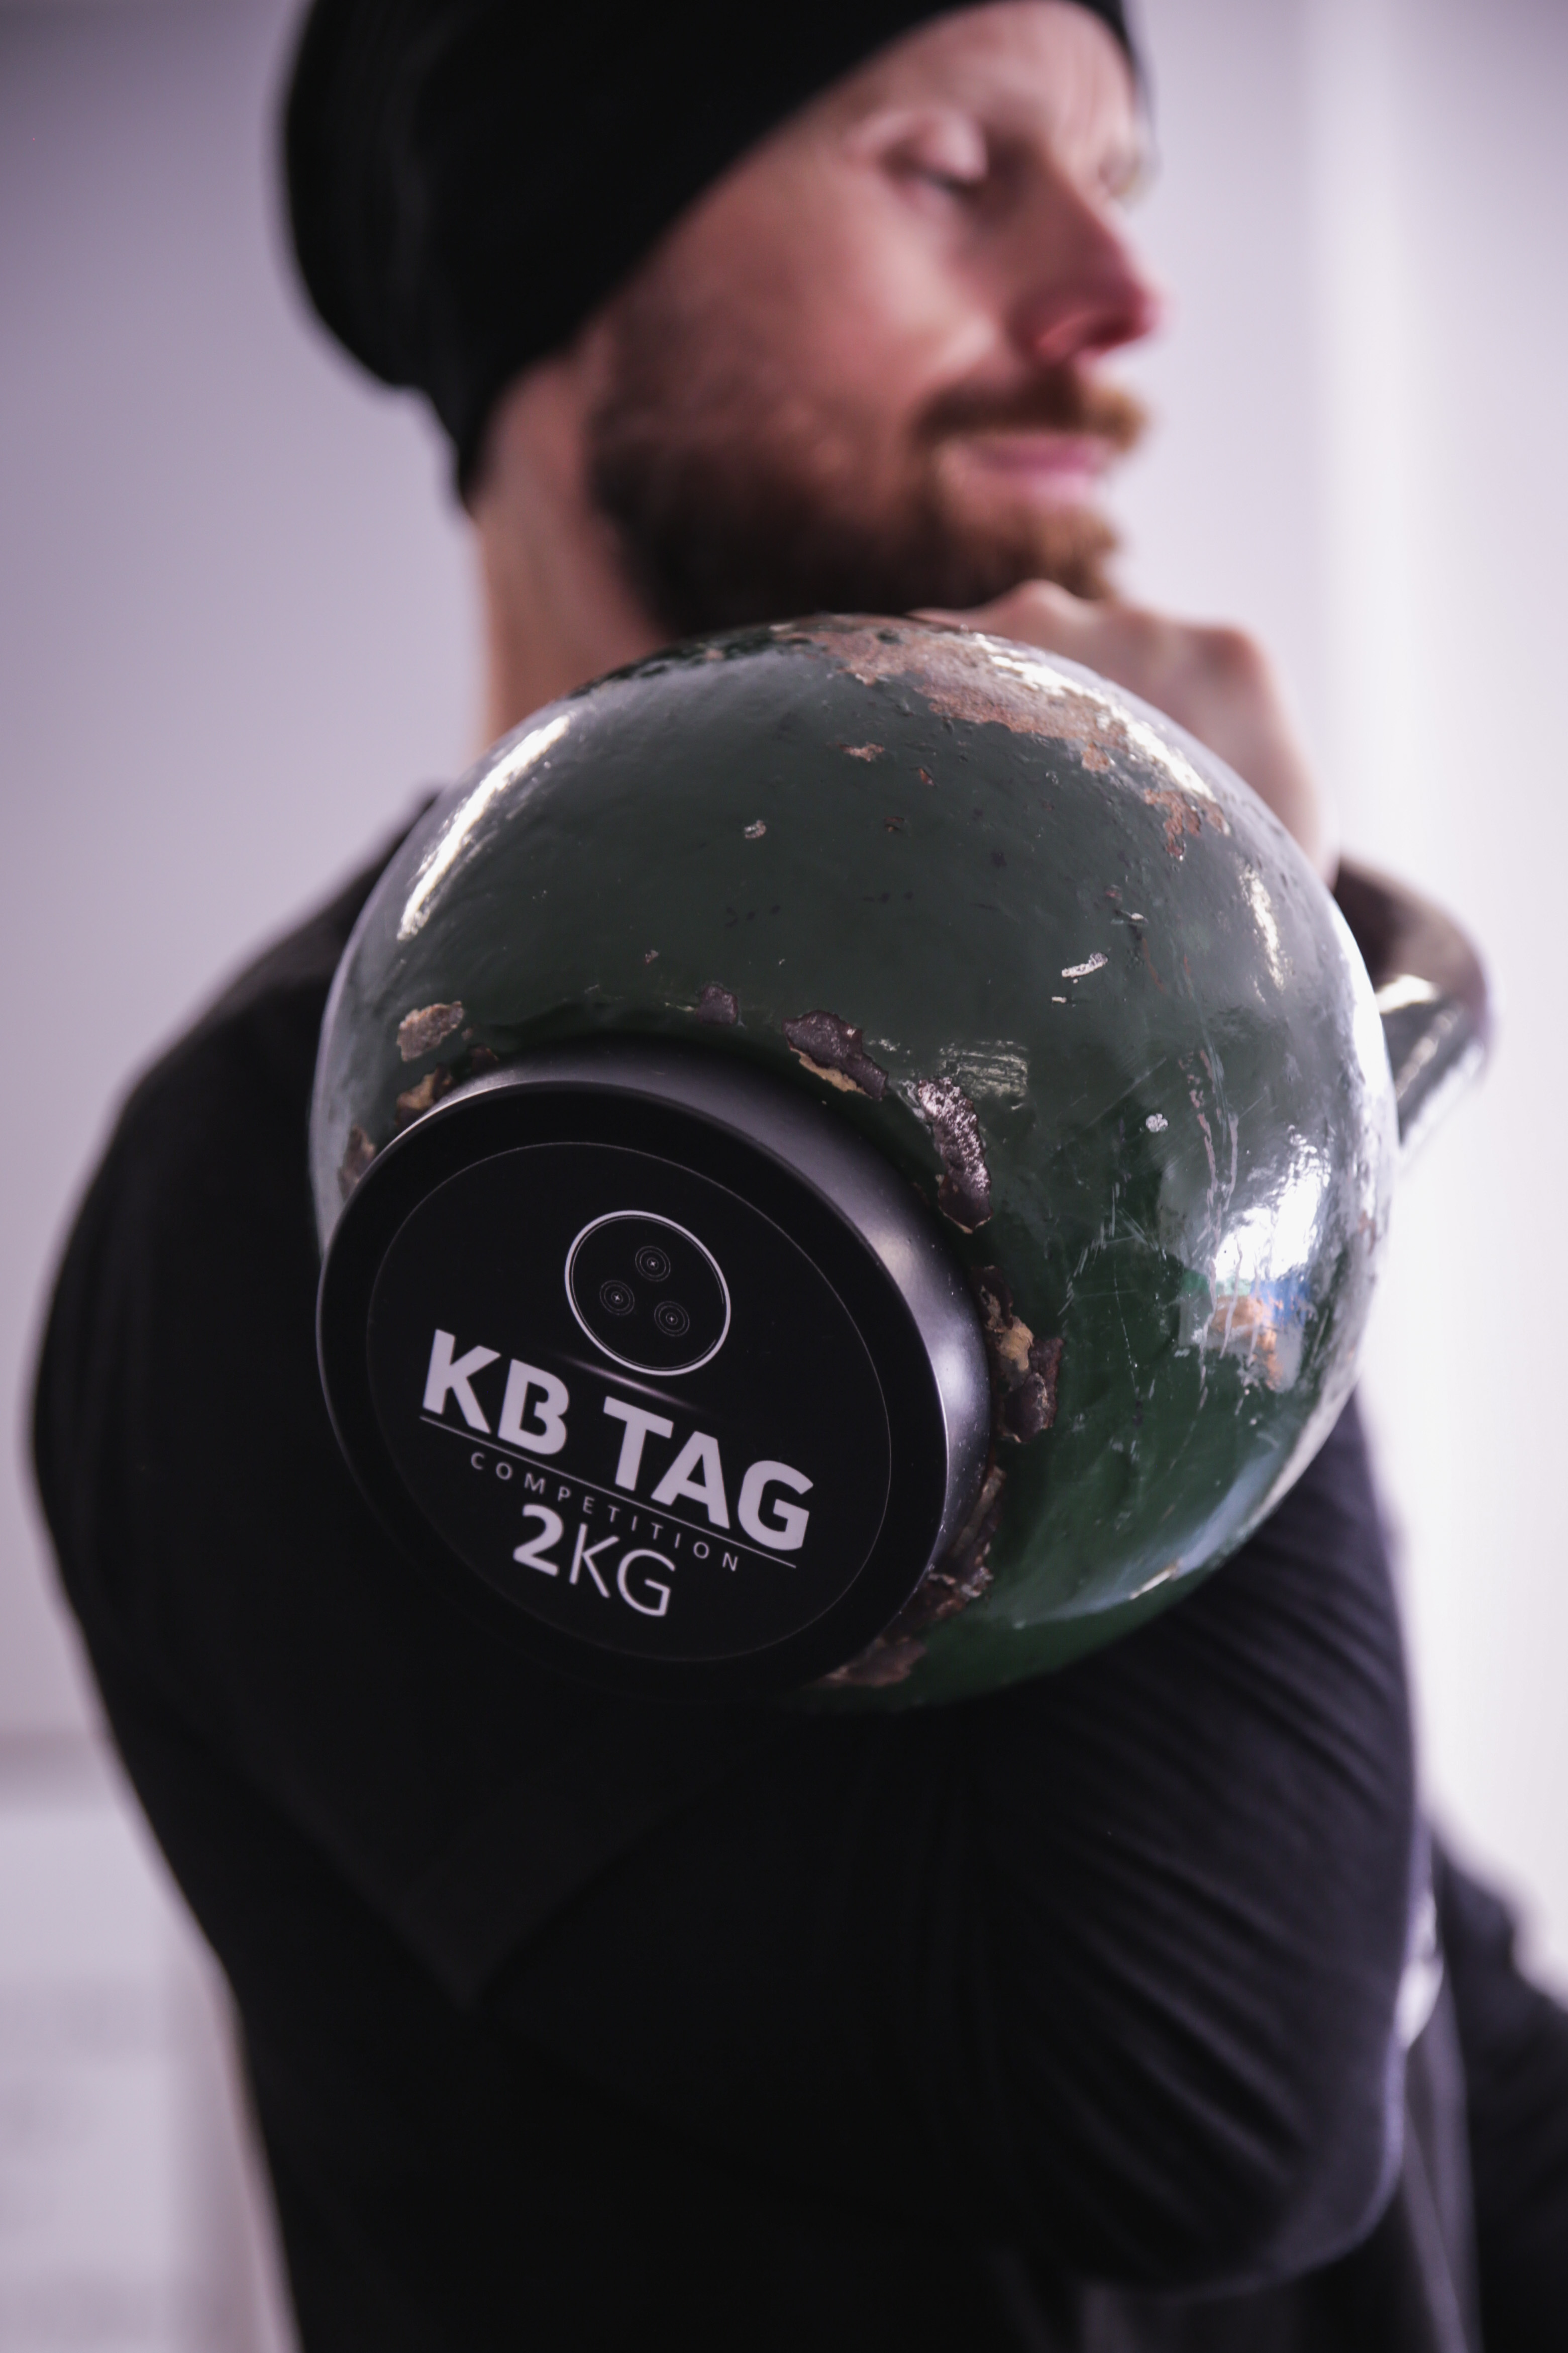 kt tag competition